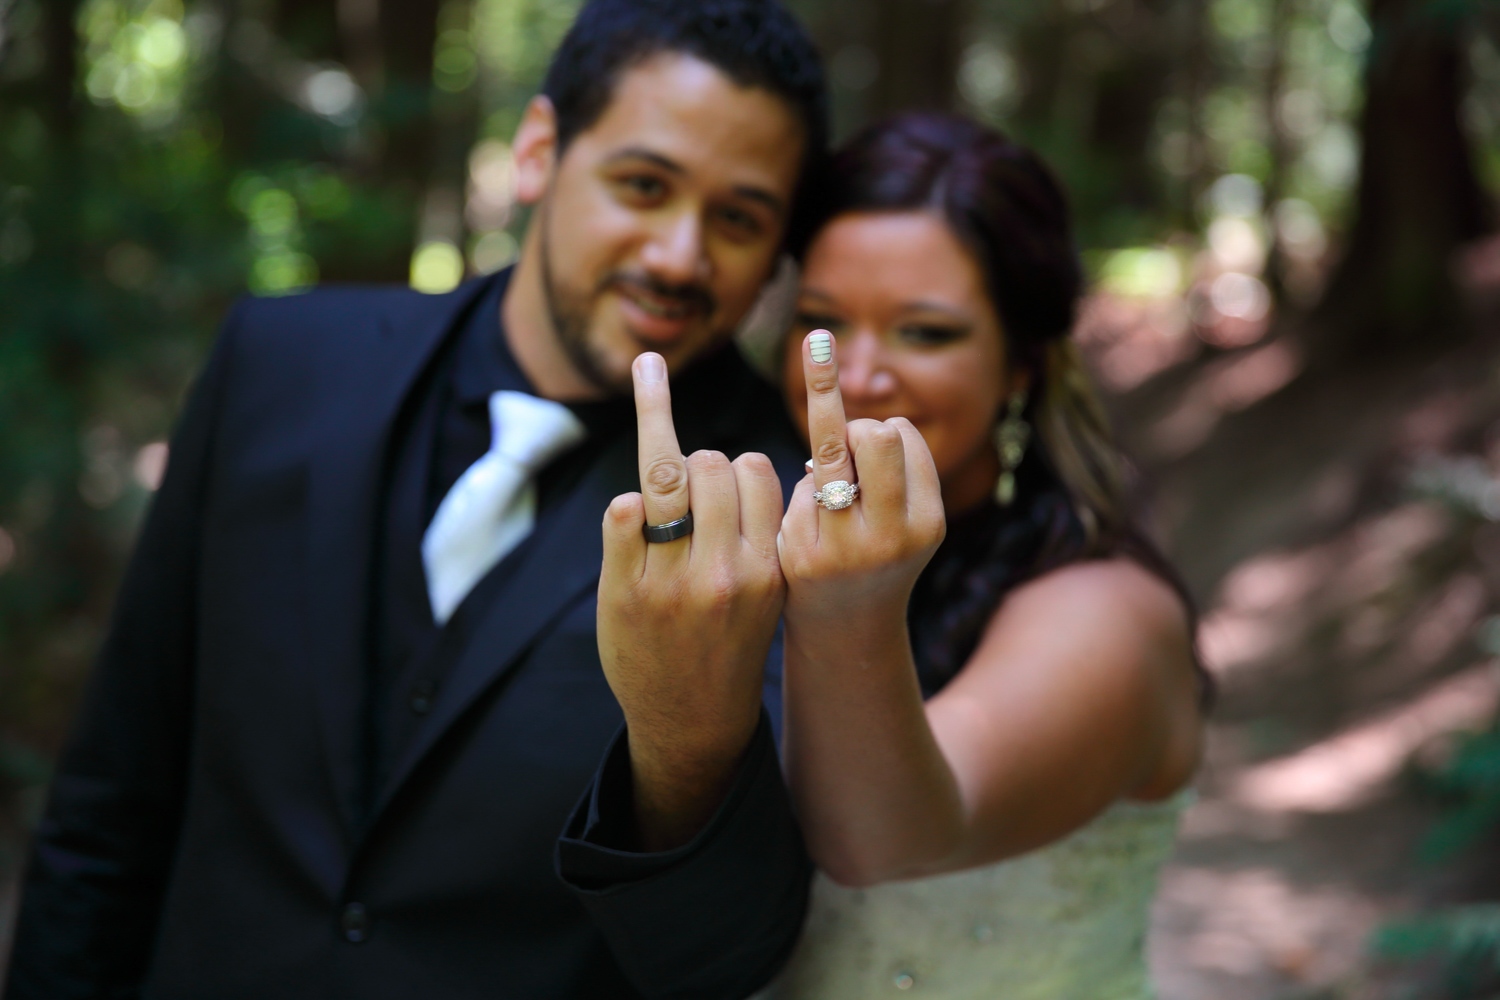 Trash the Dress Photos Whatcom Falls Bellingham Washington01.jpg